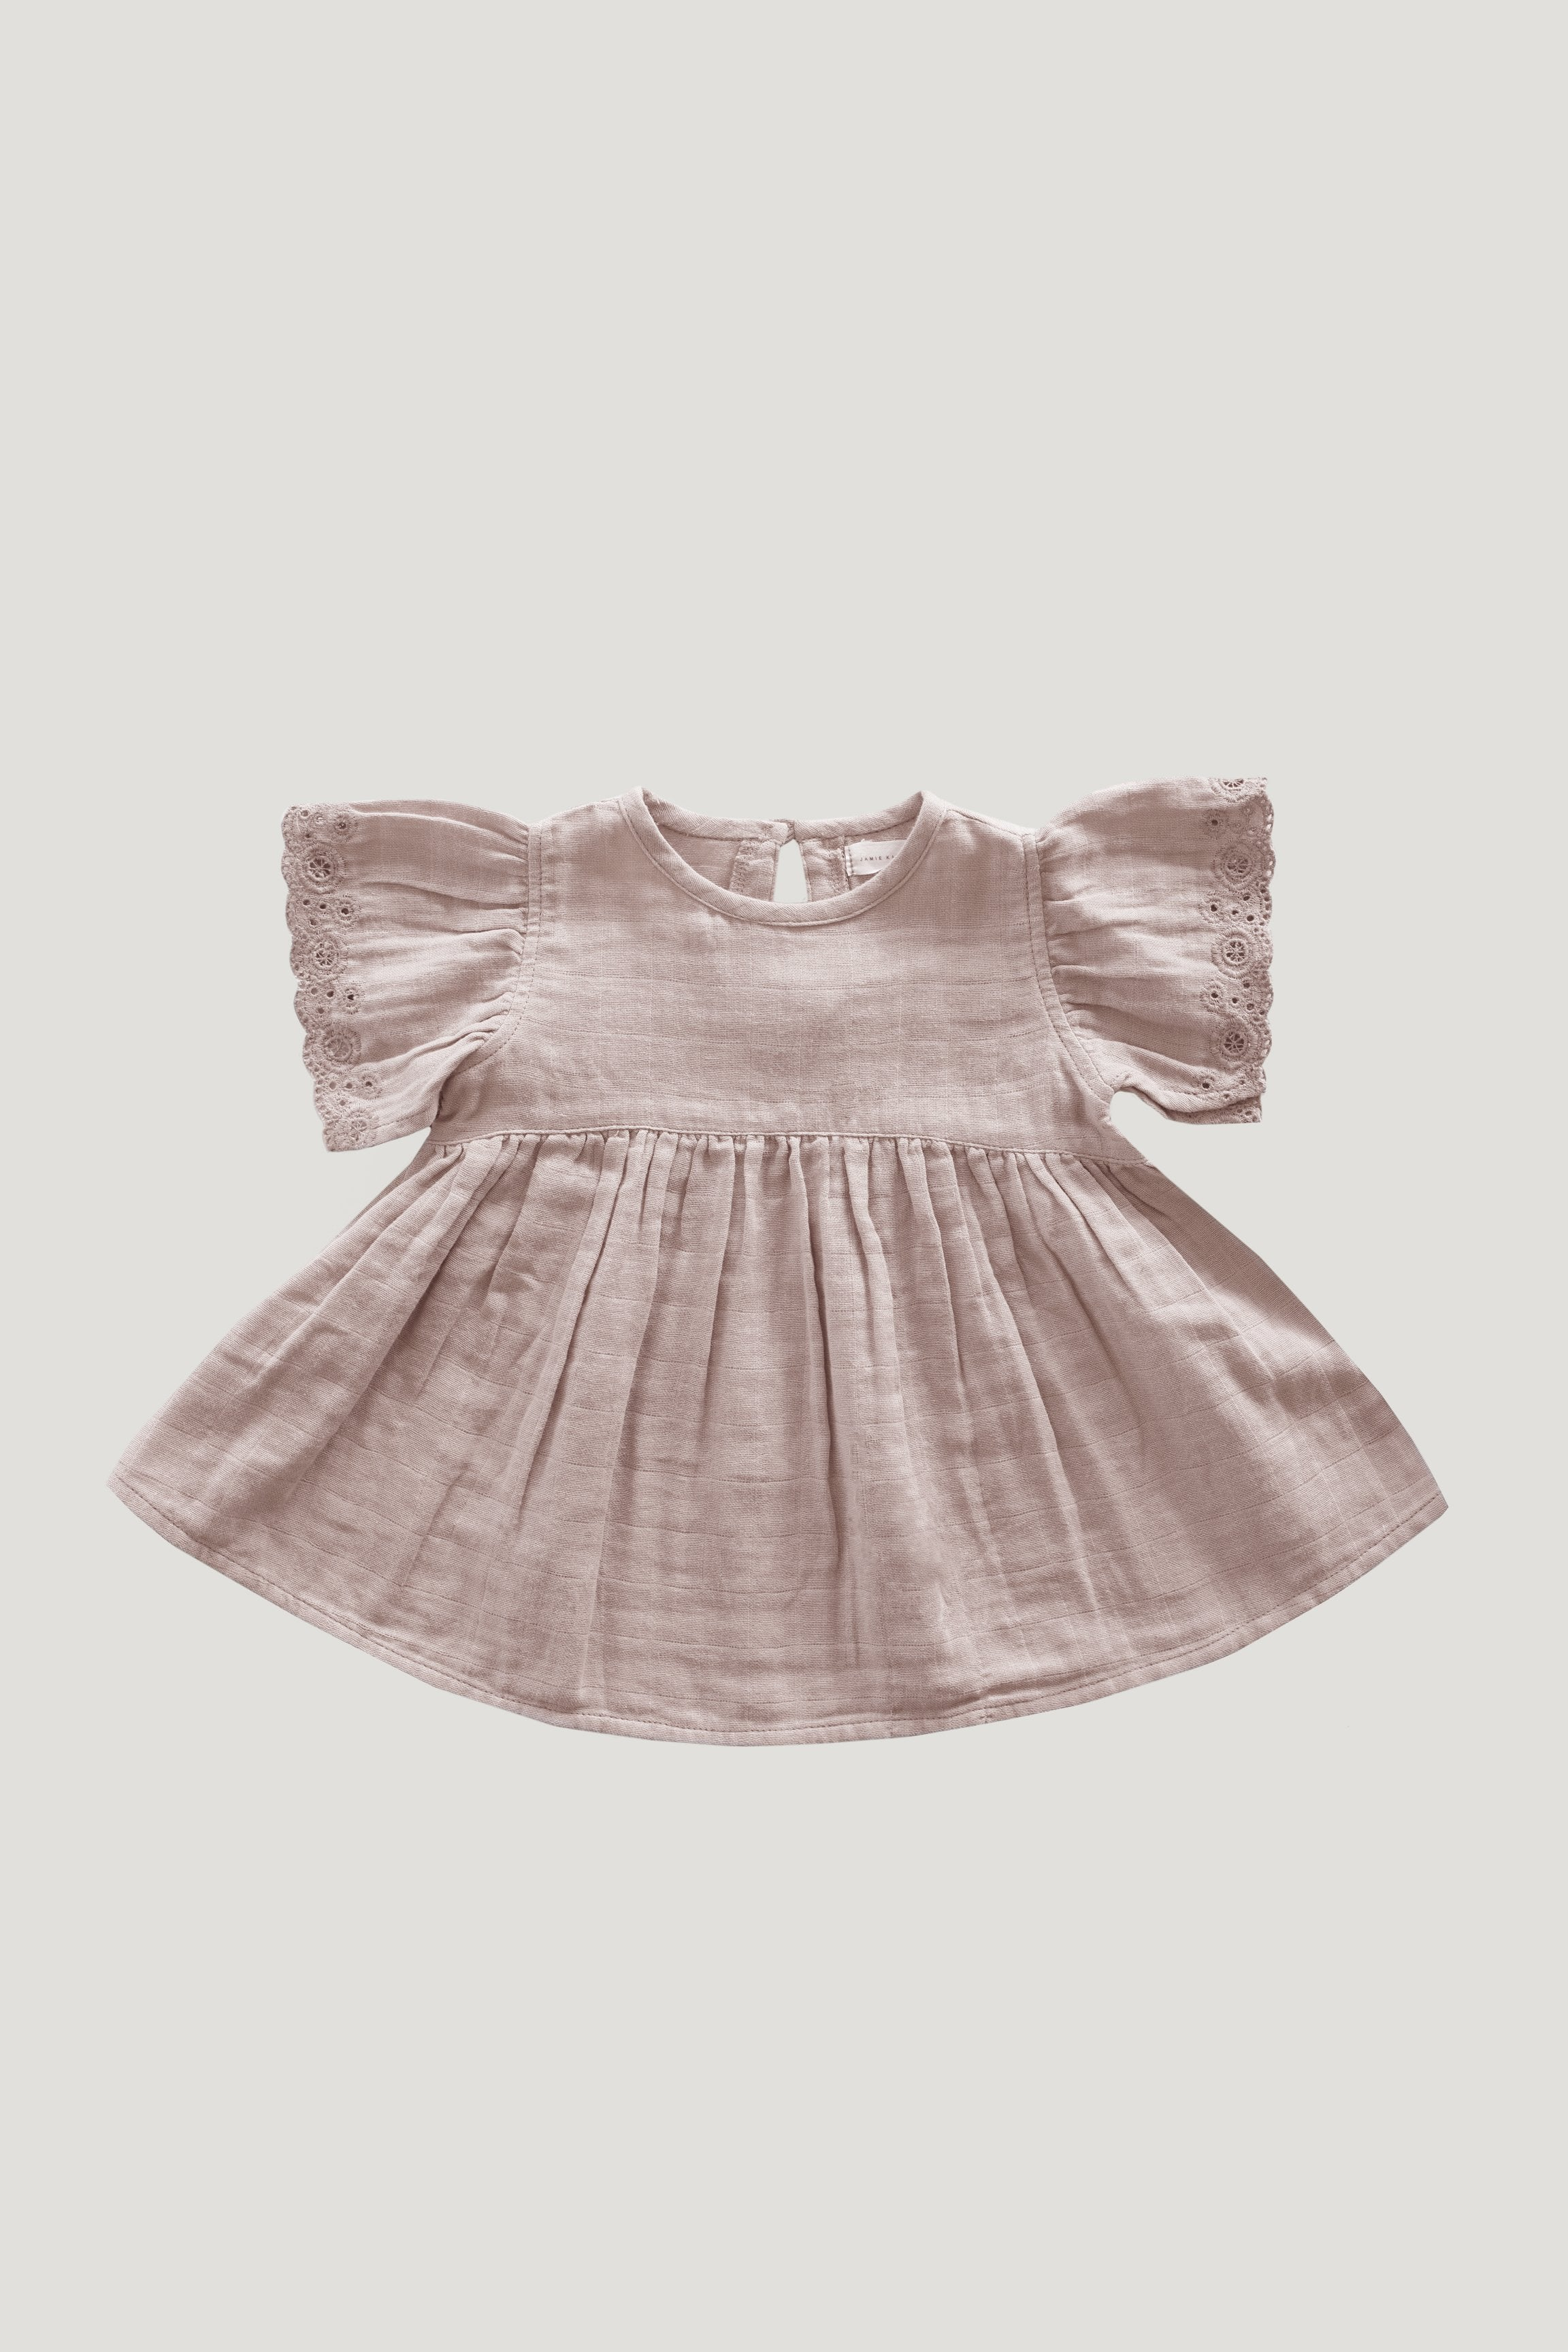 Organic Cotton Muslin Chloe Dress - Bloom